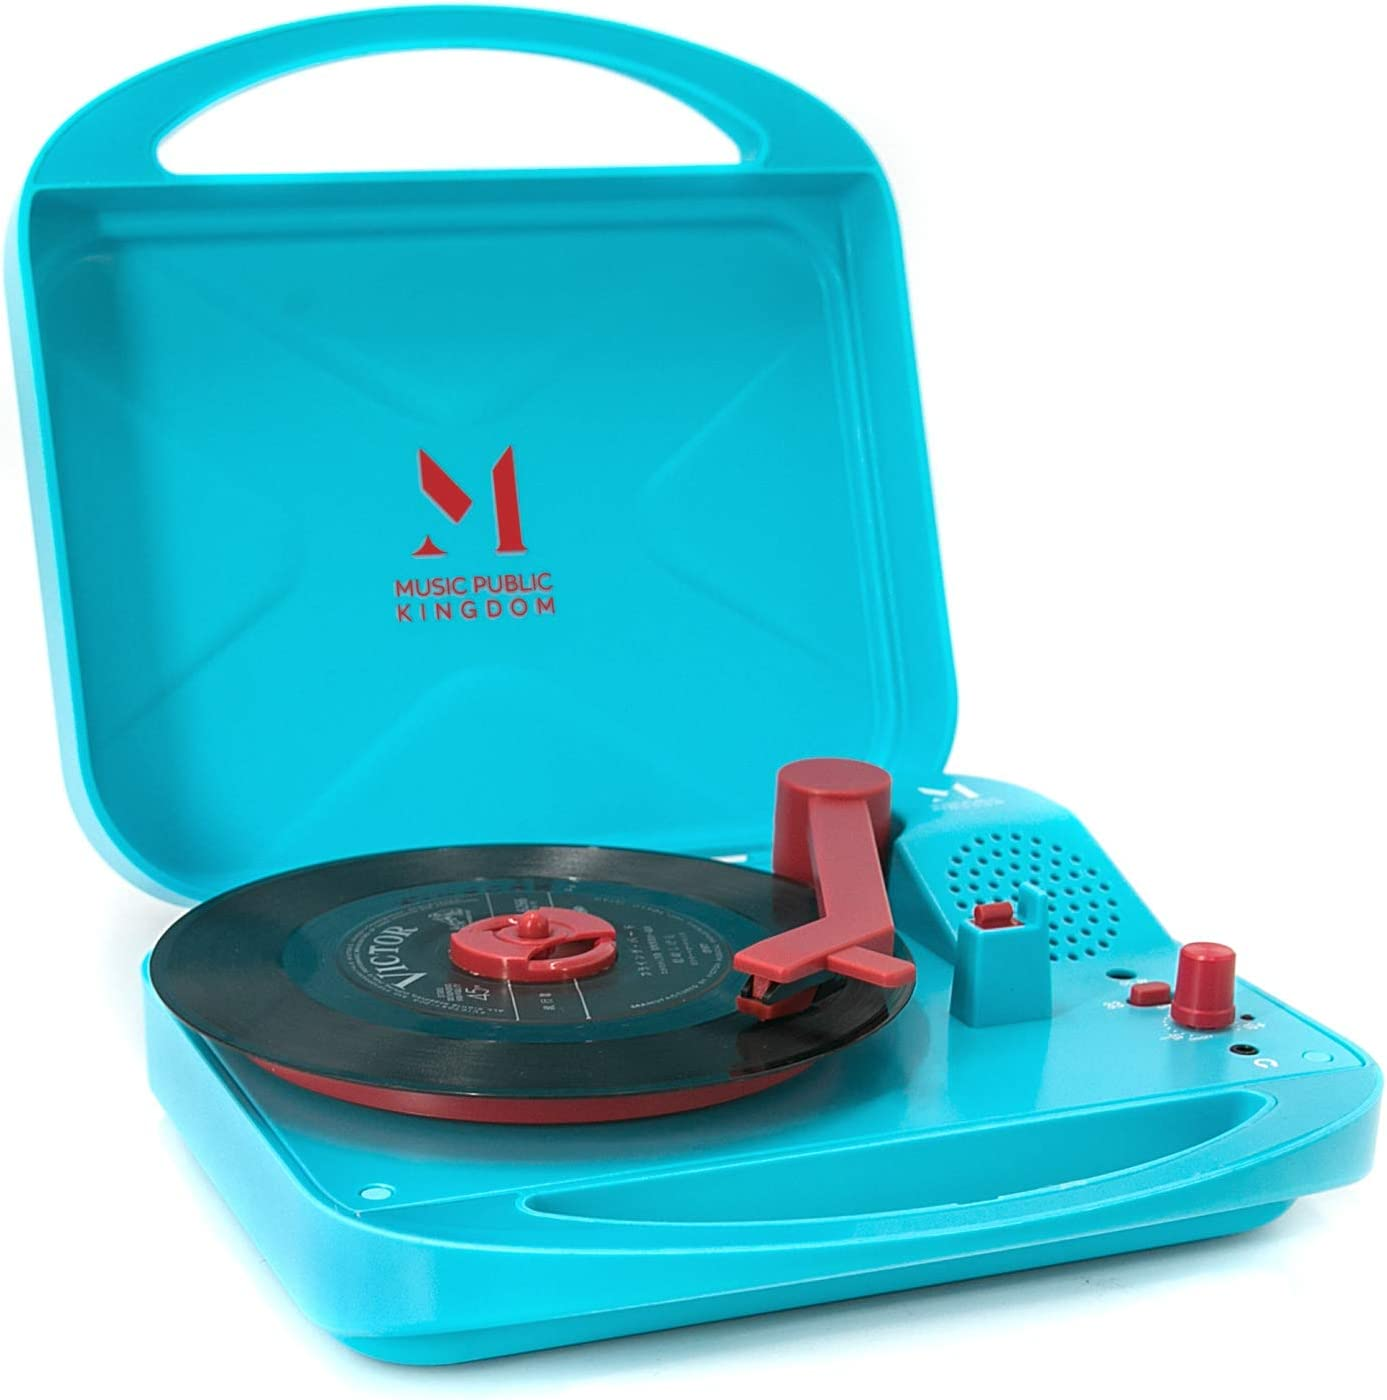 Record Player, Mini Portable Battery Operated Travel Suitcase Turntable for 7 Inch Vinyl Records, 2 Speed, Headphone Jack, Built in Speaker, 4 AA Battery Powered (Blue)